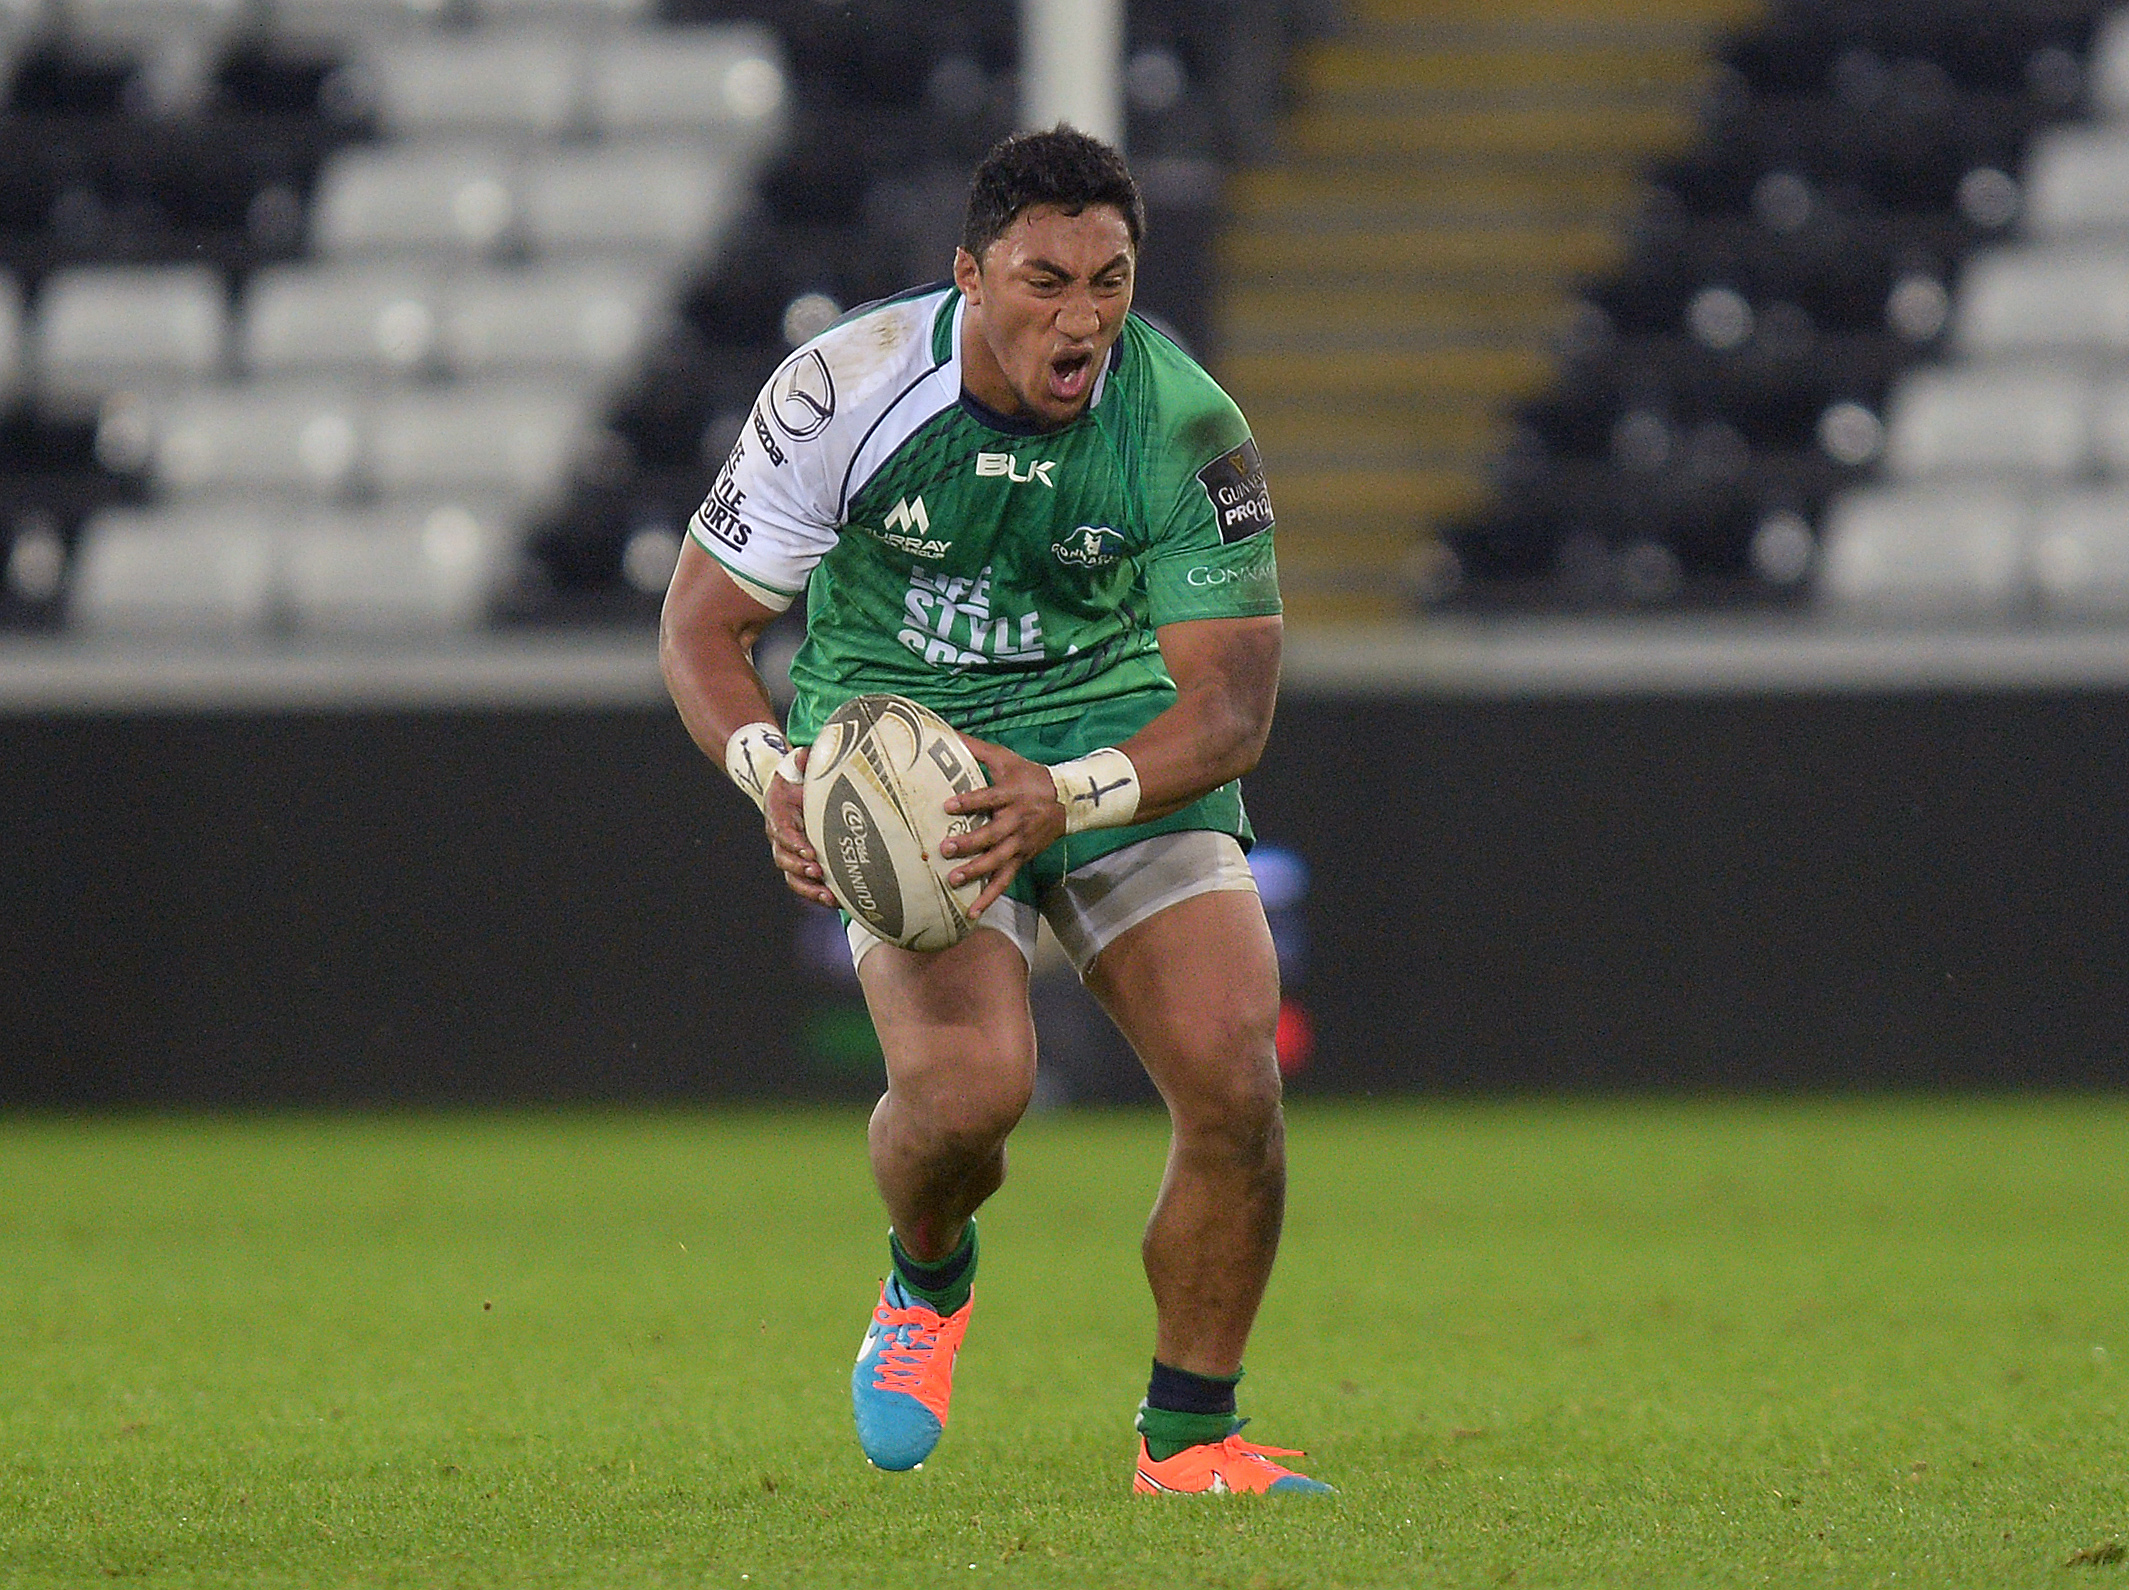 Guinness PRO12 31/10/2014 Ospreys vs Connacht Connacht's Bundee Aki goes down in pain after injuring his knee earlier in the game Mandatory Credit ©INPHO/Ian Cook